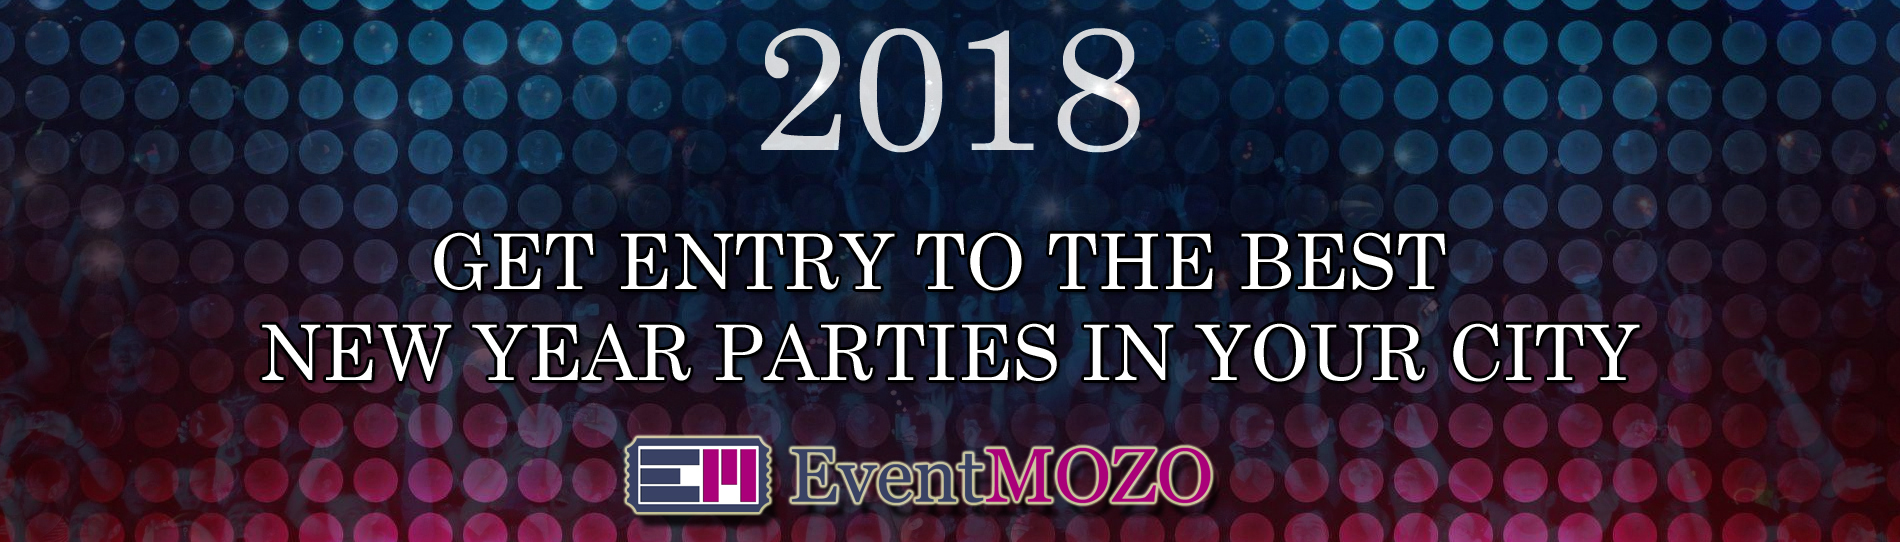 EventMozo Bay Area New Year Events